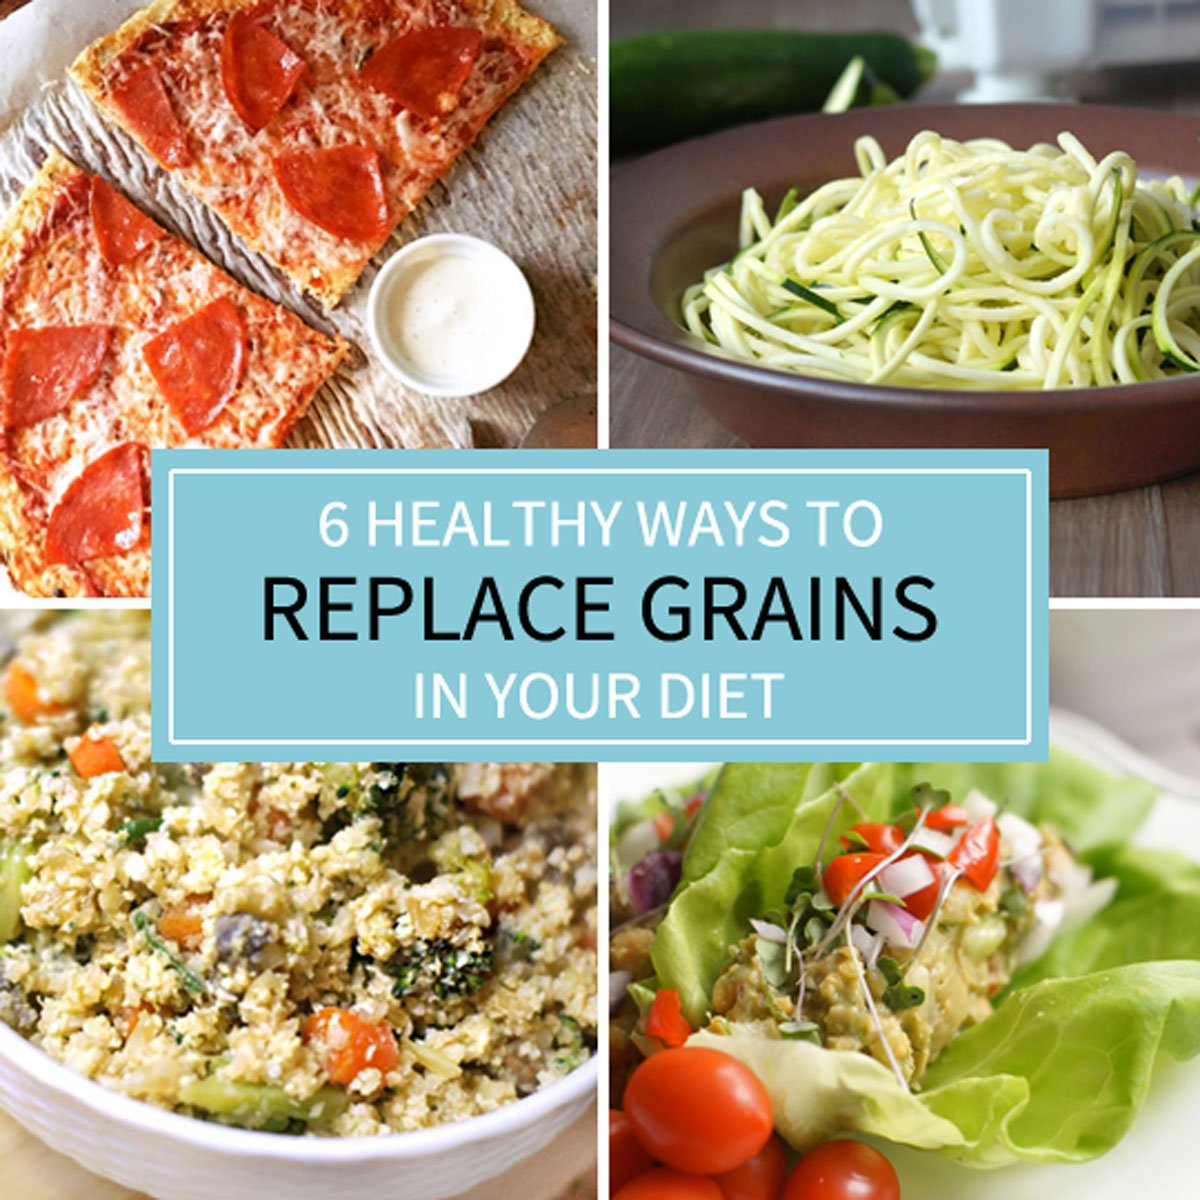 recipes that are grain free